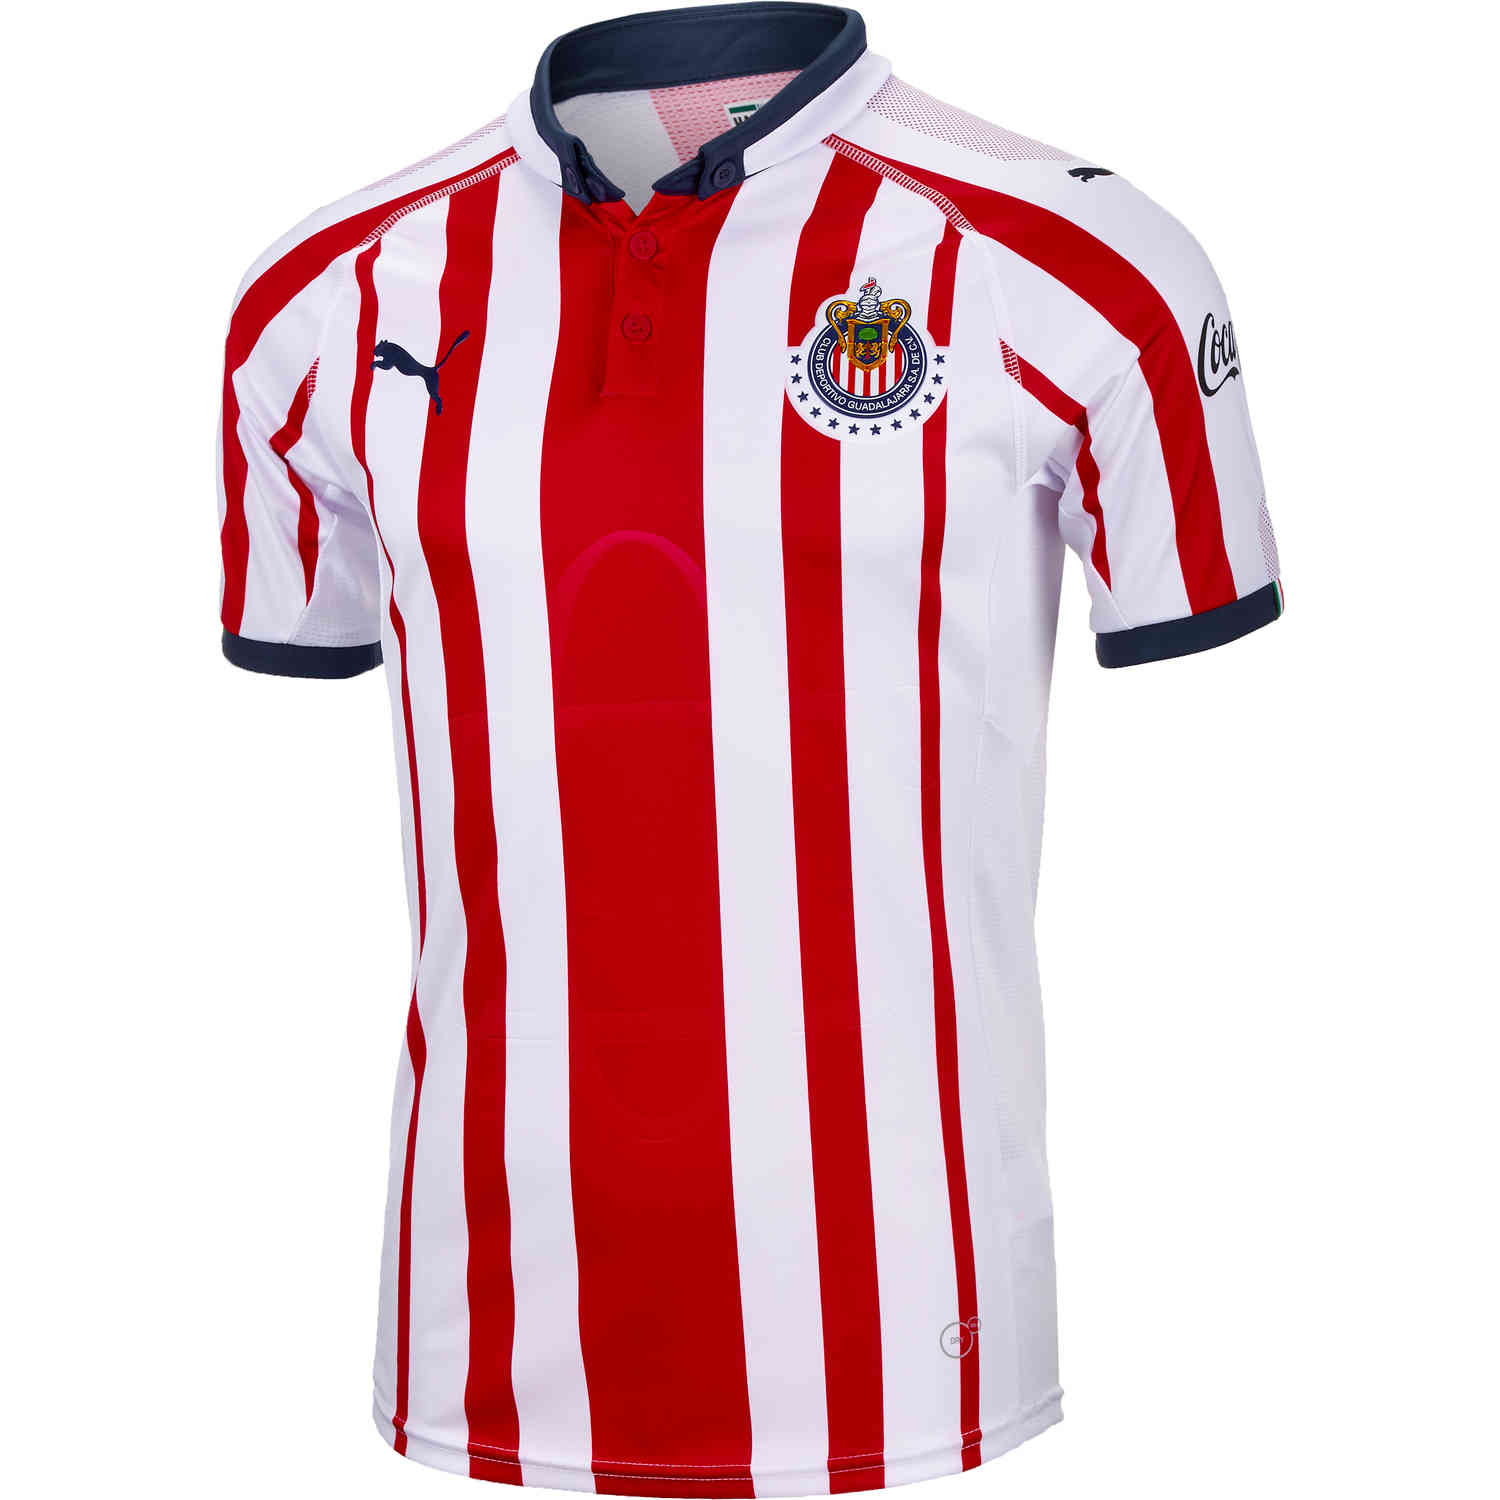 reputable site 1c9e3 8a896 PUMA Chivas Home Jersey – Special Edition 2018-19